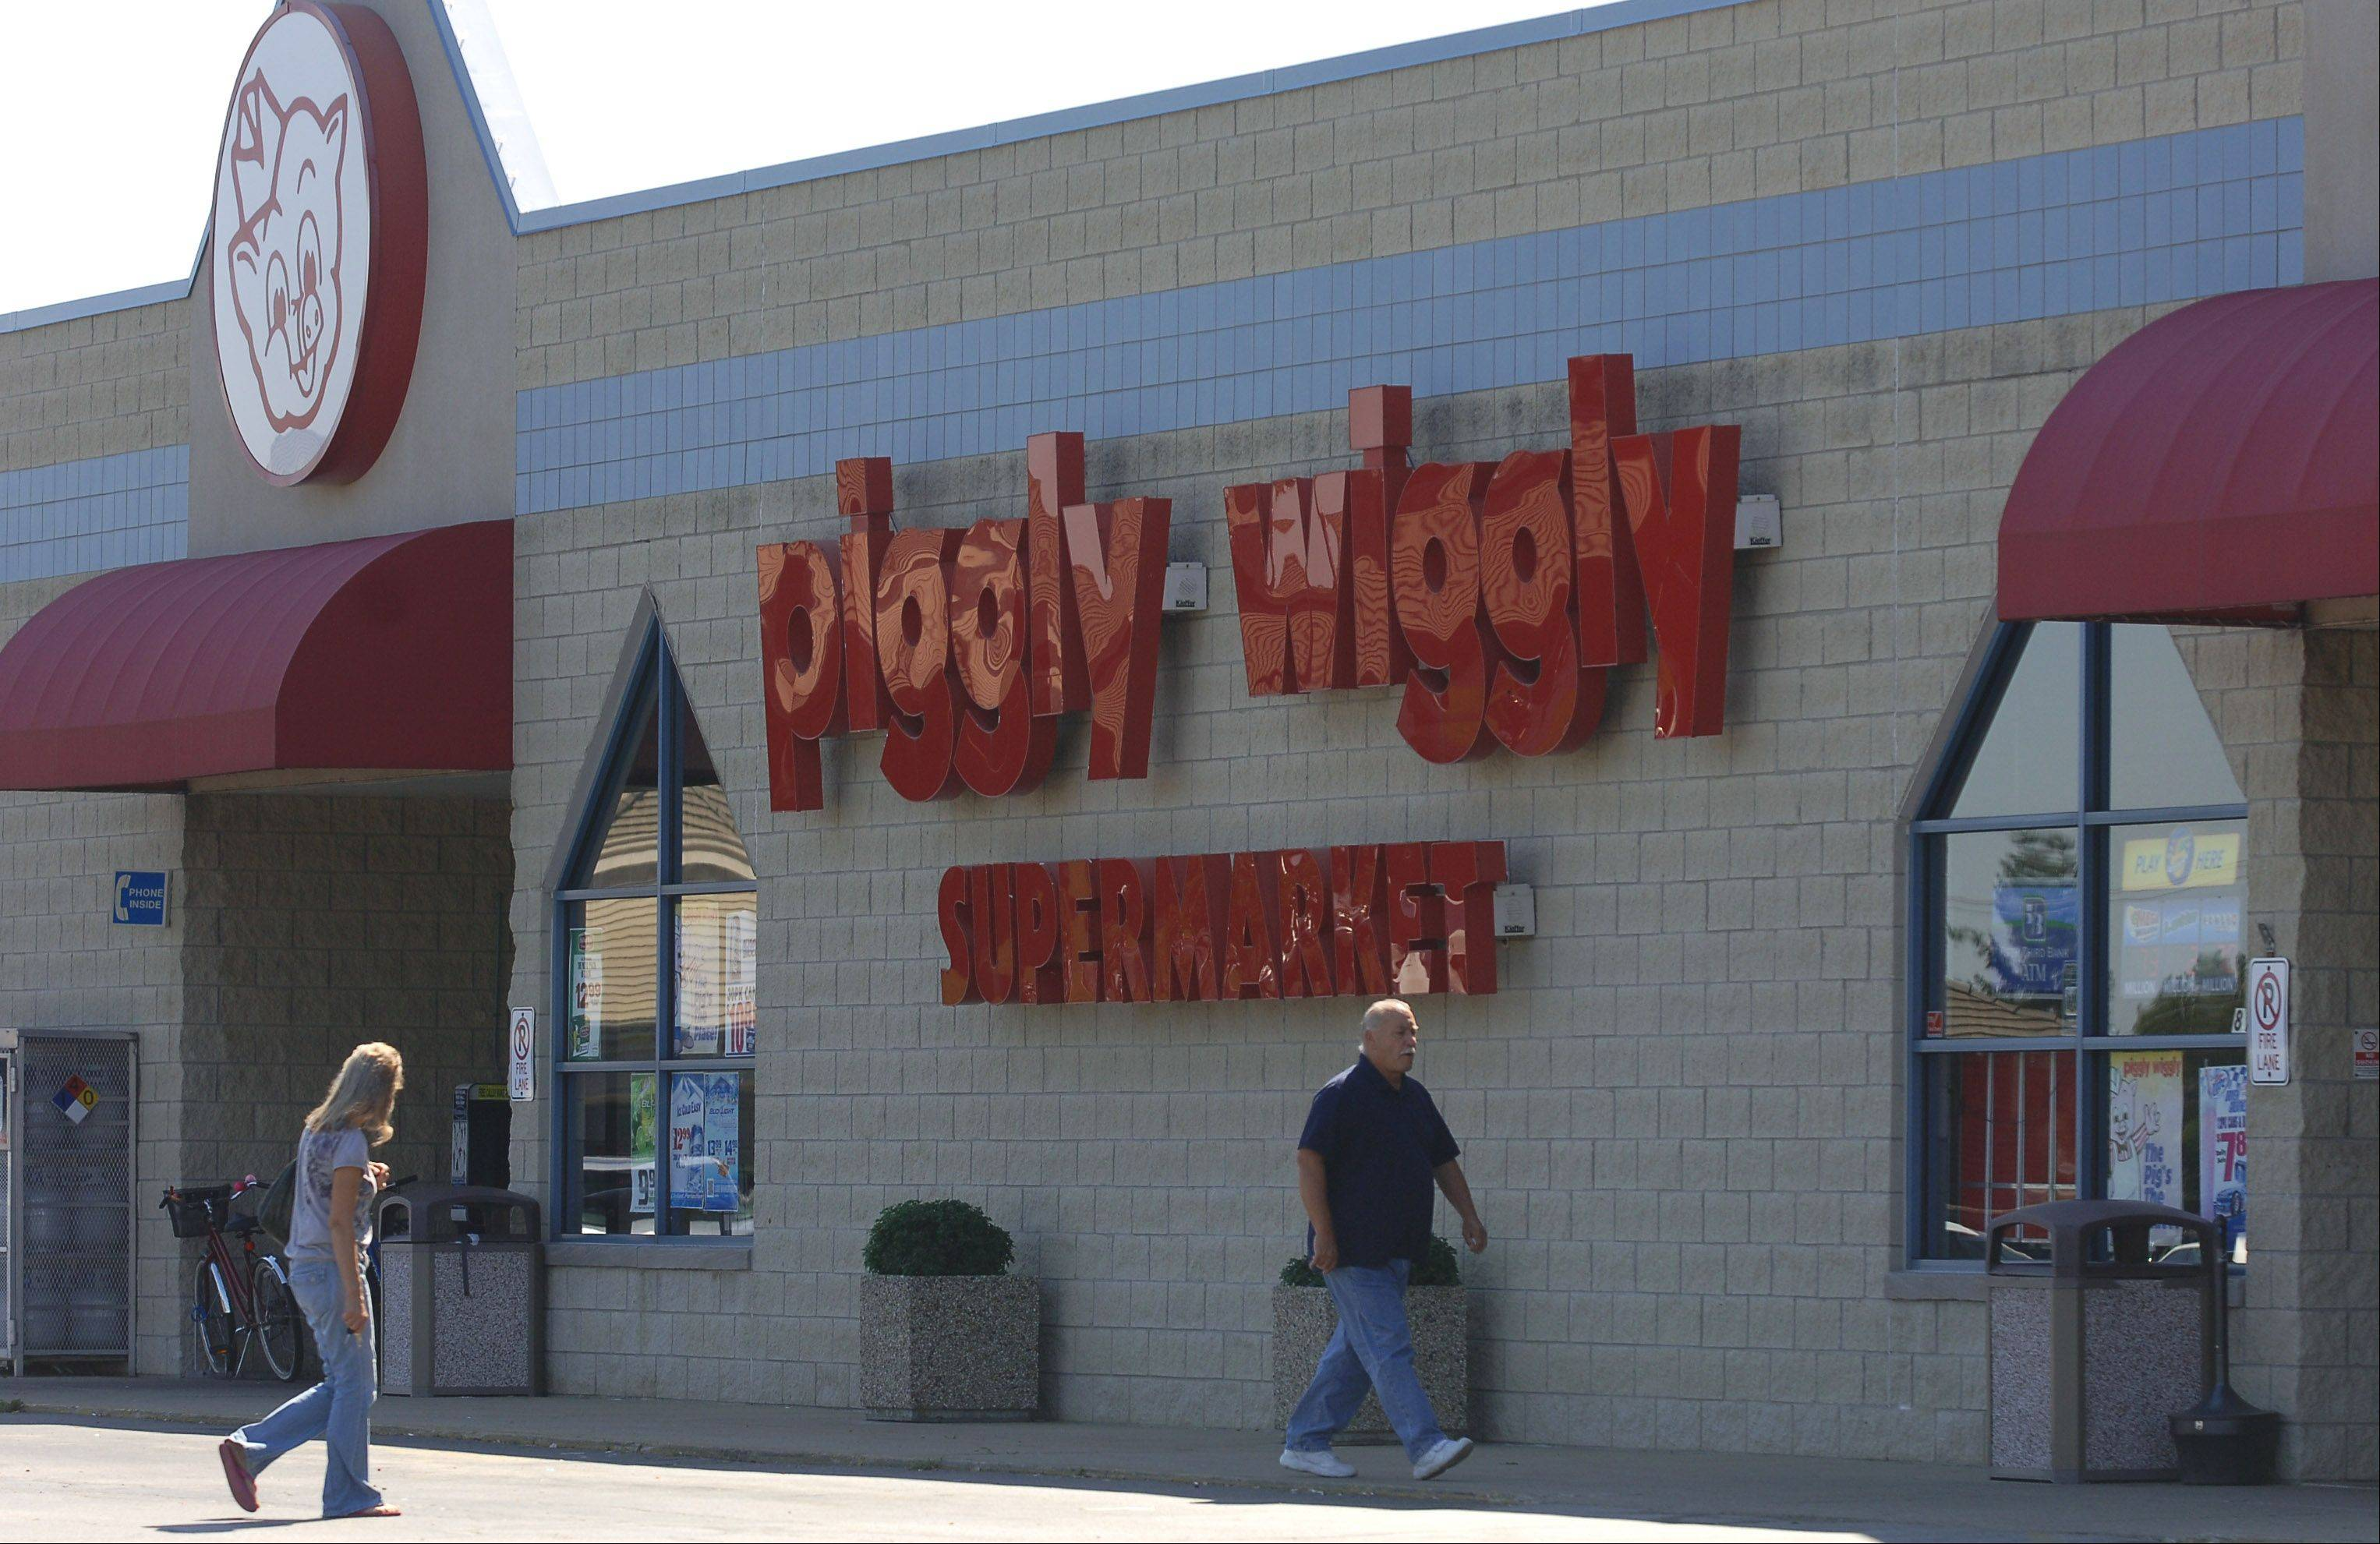 Grayslake's Piggly Wiggly, in a plaza at Center Street and Atkinson Road, is scheduled to close Dec. 15. Plans call for Farmer's Market Place to open in the same space April 1.